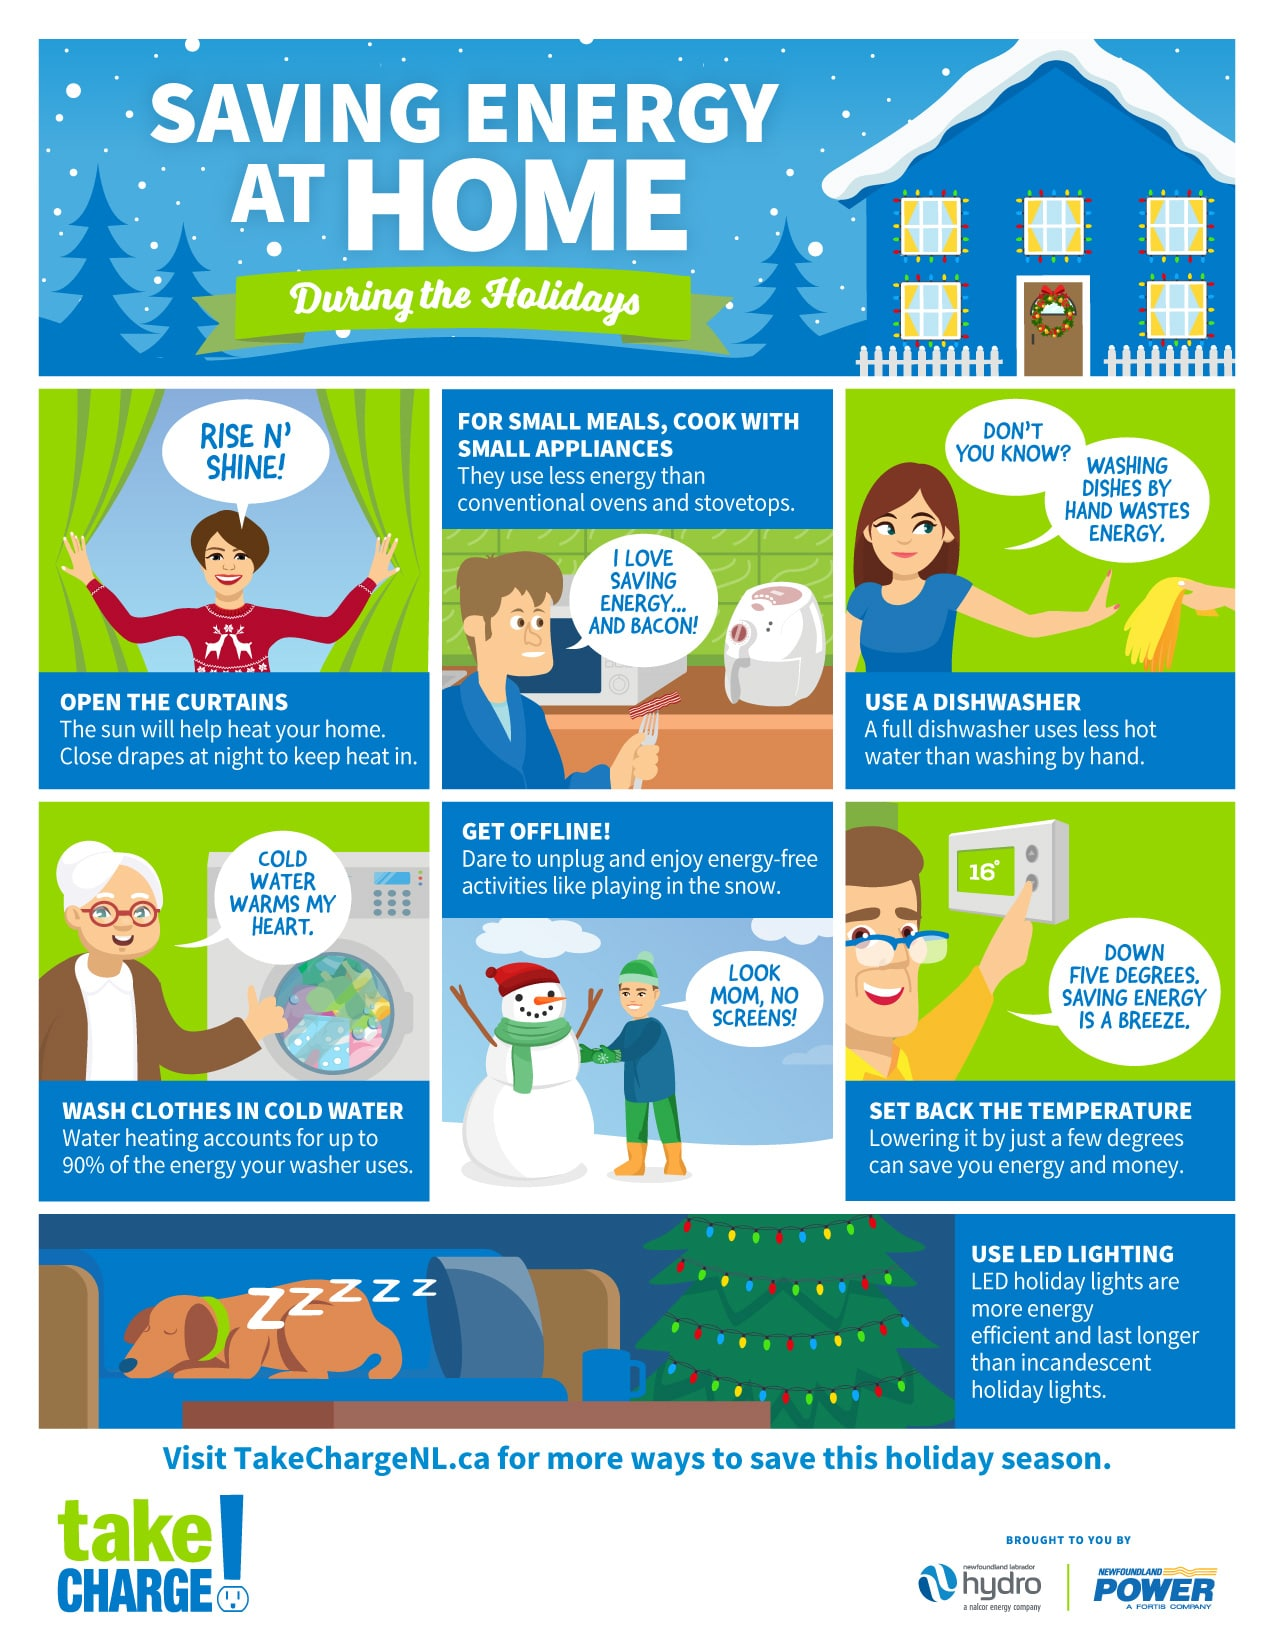 Saving Energy at Home During the Holidays!